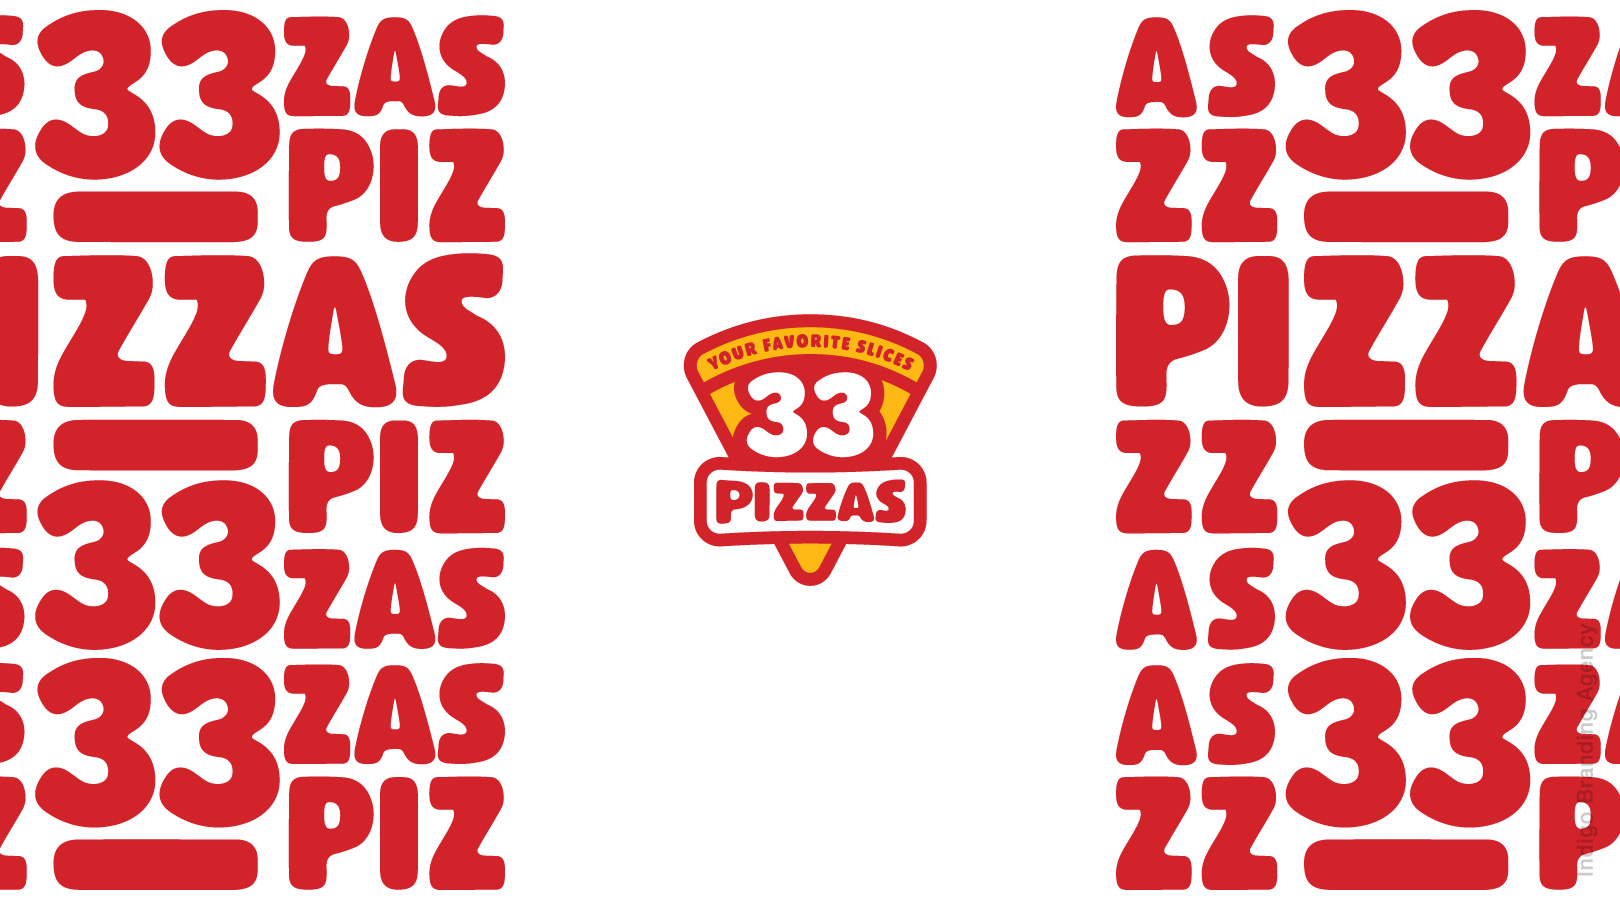 pizza packaging design and branding done with red and yellow colors by indigo branding agency located in Yerevan